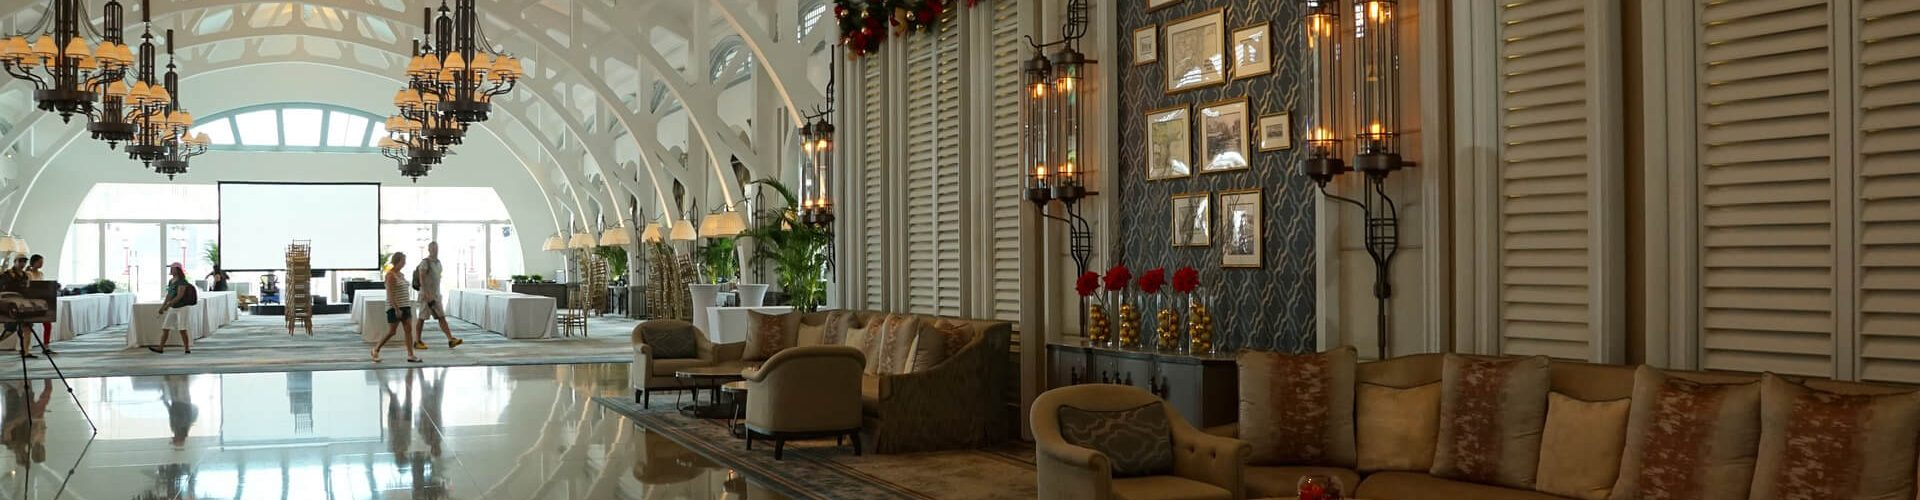 luxe interieur hotel